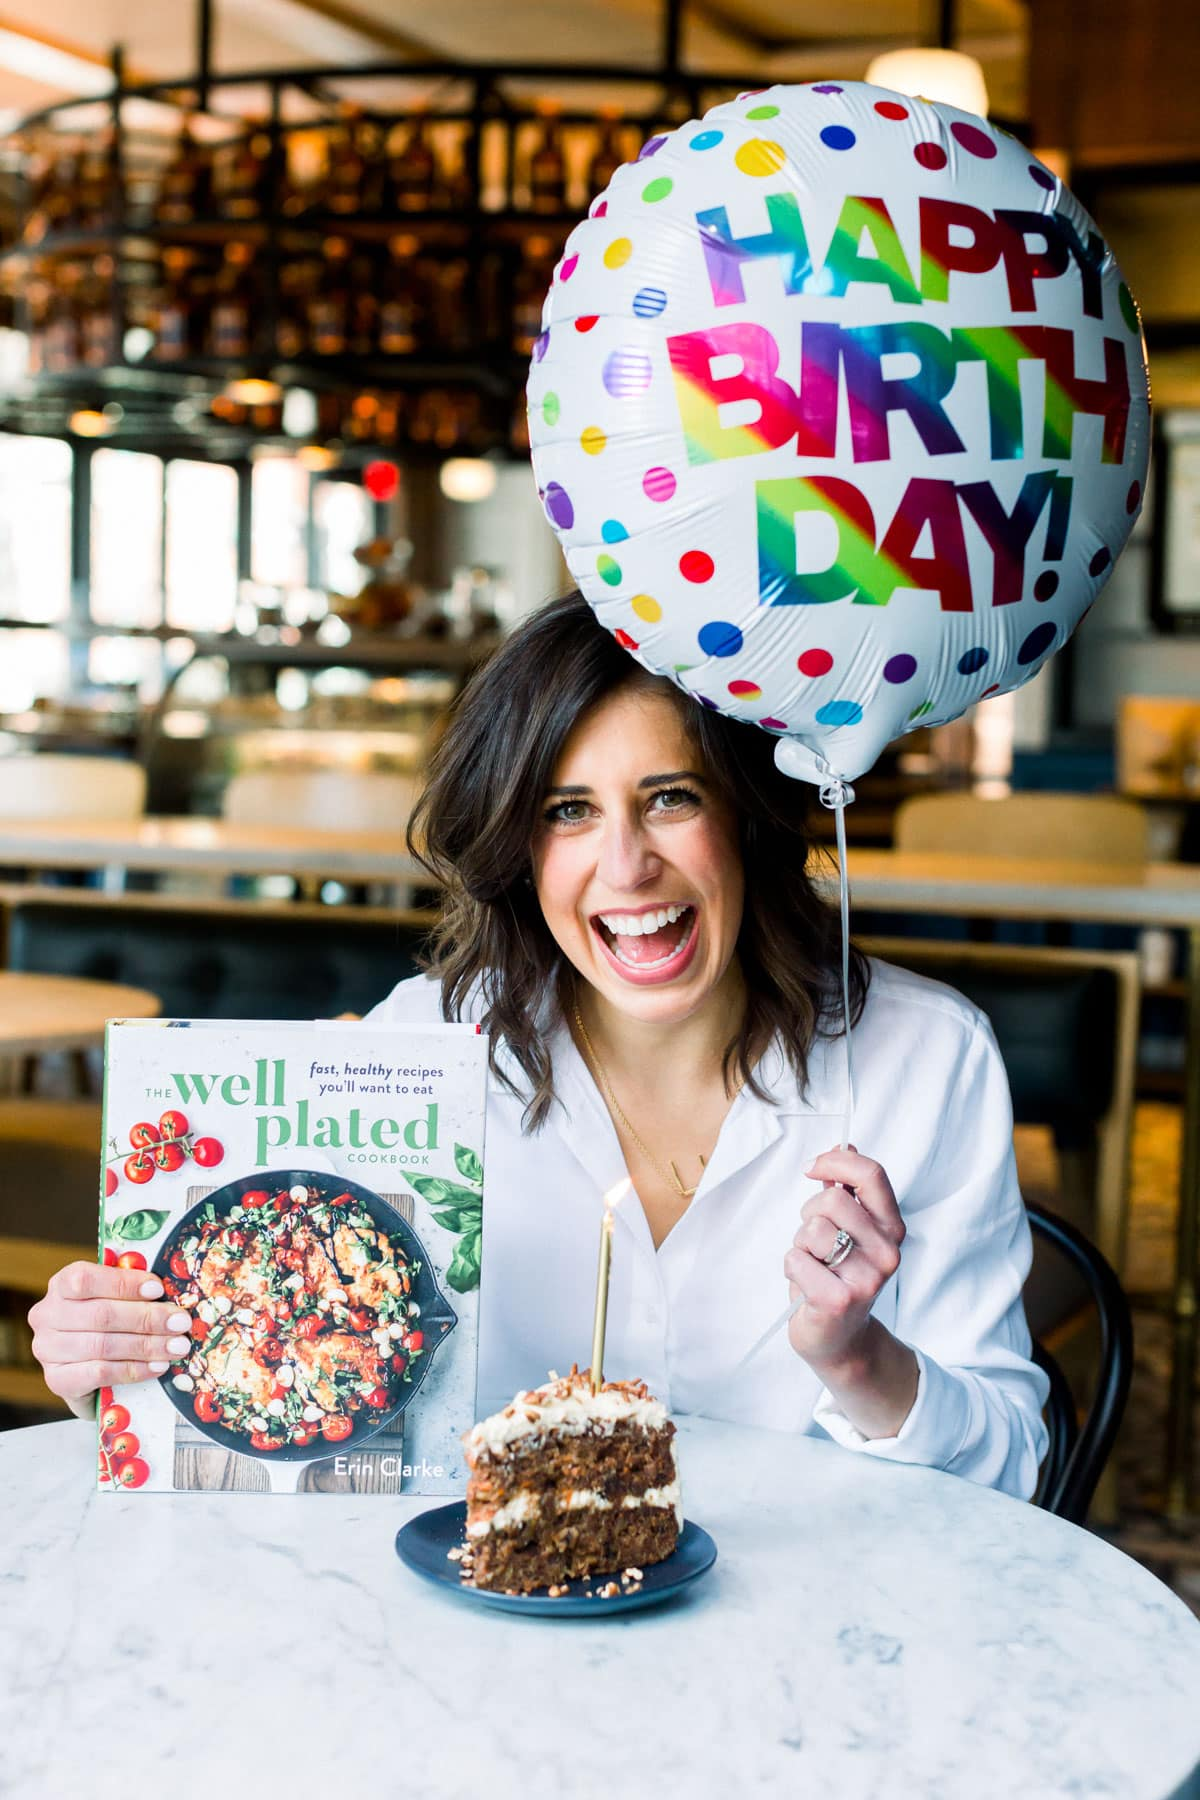 Erin Clarke with a slice of cake, birthday balloon, and copy of The Well Plated Cookbook